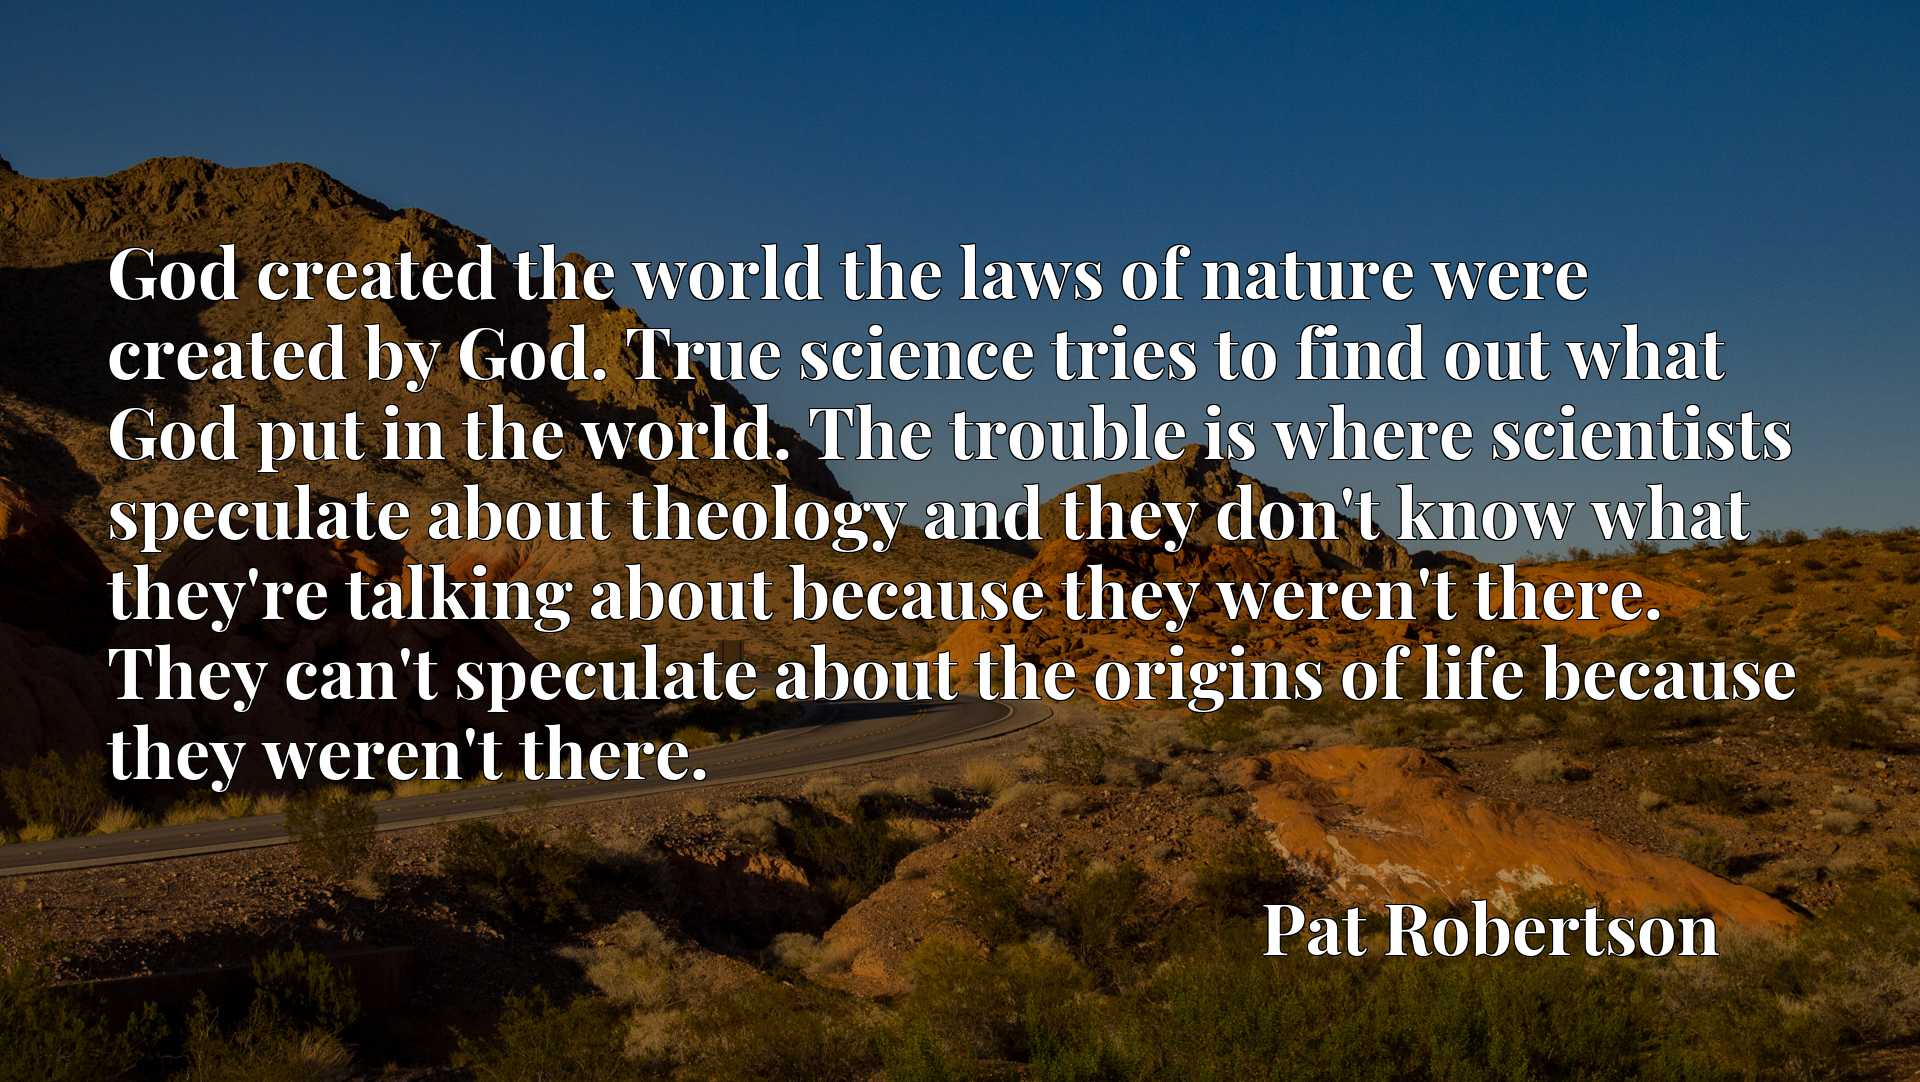 God created the world the laws of nature were created by God. True science tries to find out what God put in the world. The trouble is where scientists speculate about theology and they don't know what they're talking about because they weren't there. They can't speculate about the origins of life because they weren't there.